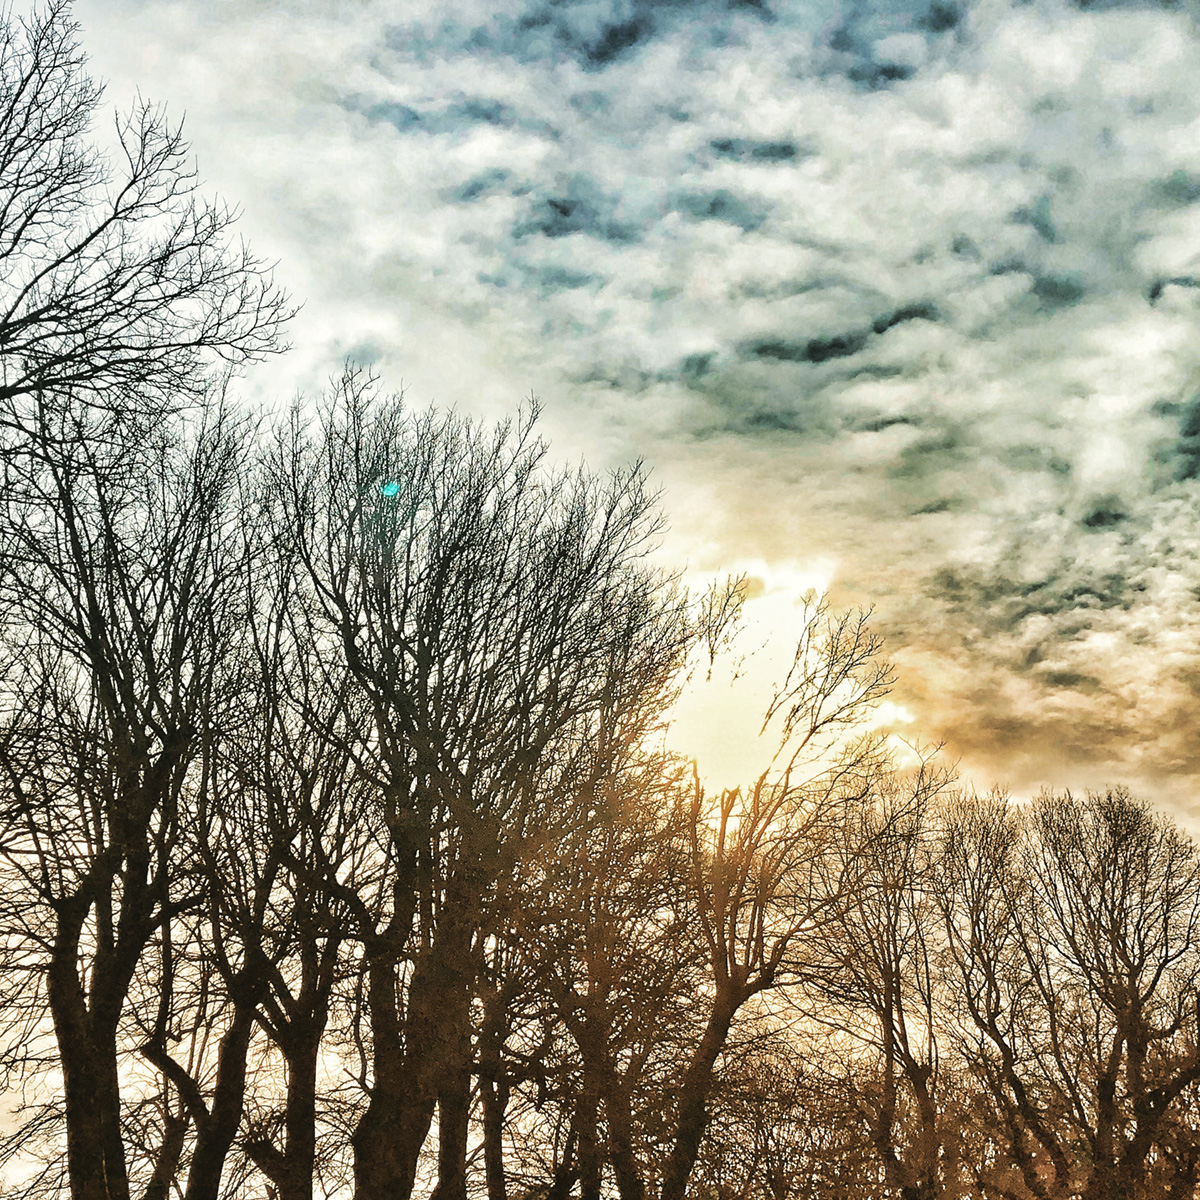 Bare Trees in Cloudy Sky